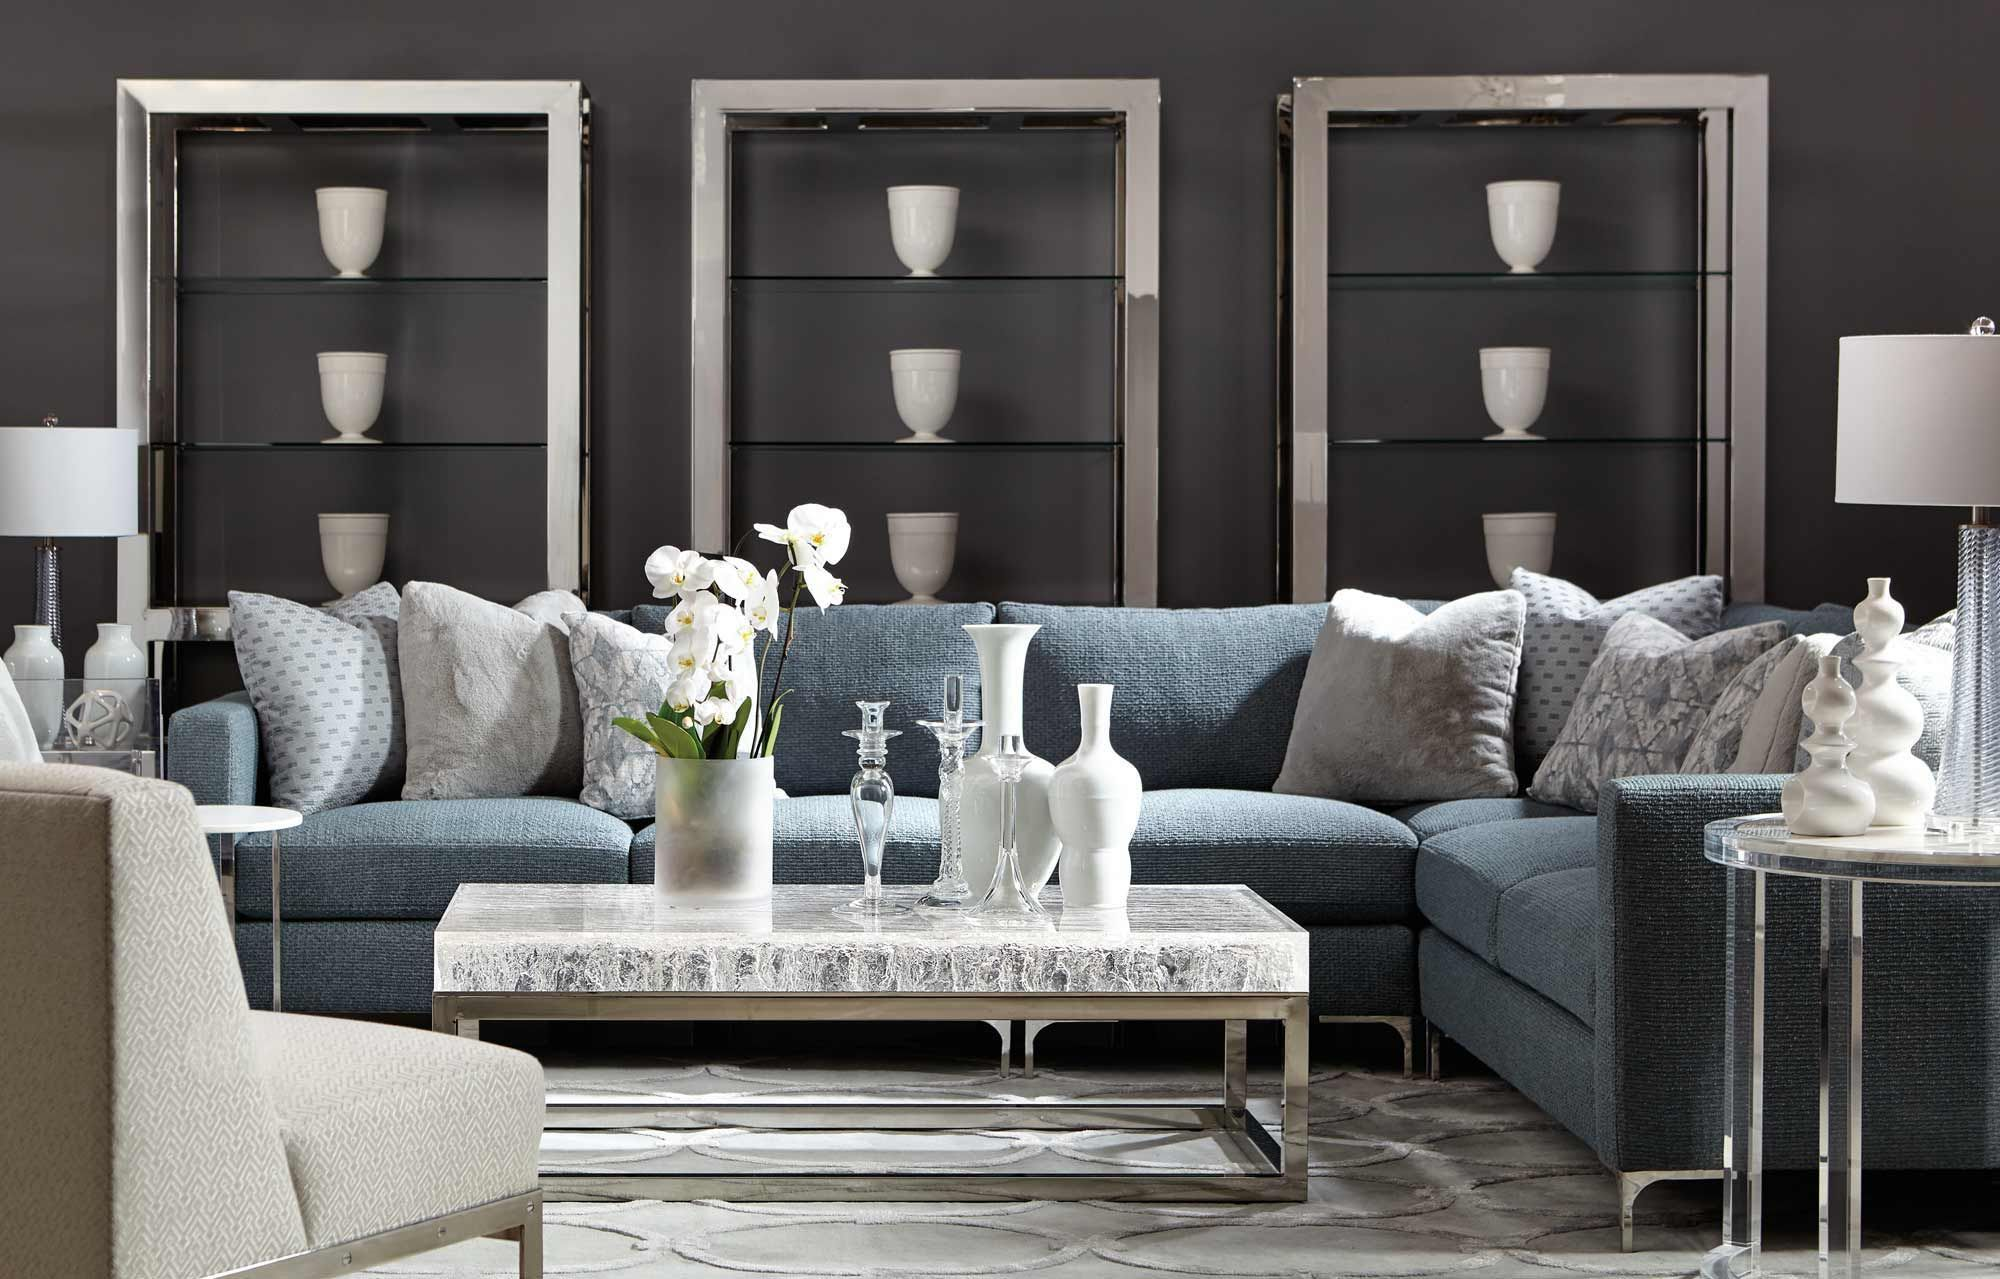 Stupendous With Bernhardts Sophisticated Furniture Collections You Can Interior Design Ideas Ghosoteloinfo